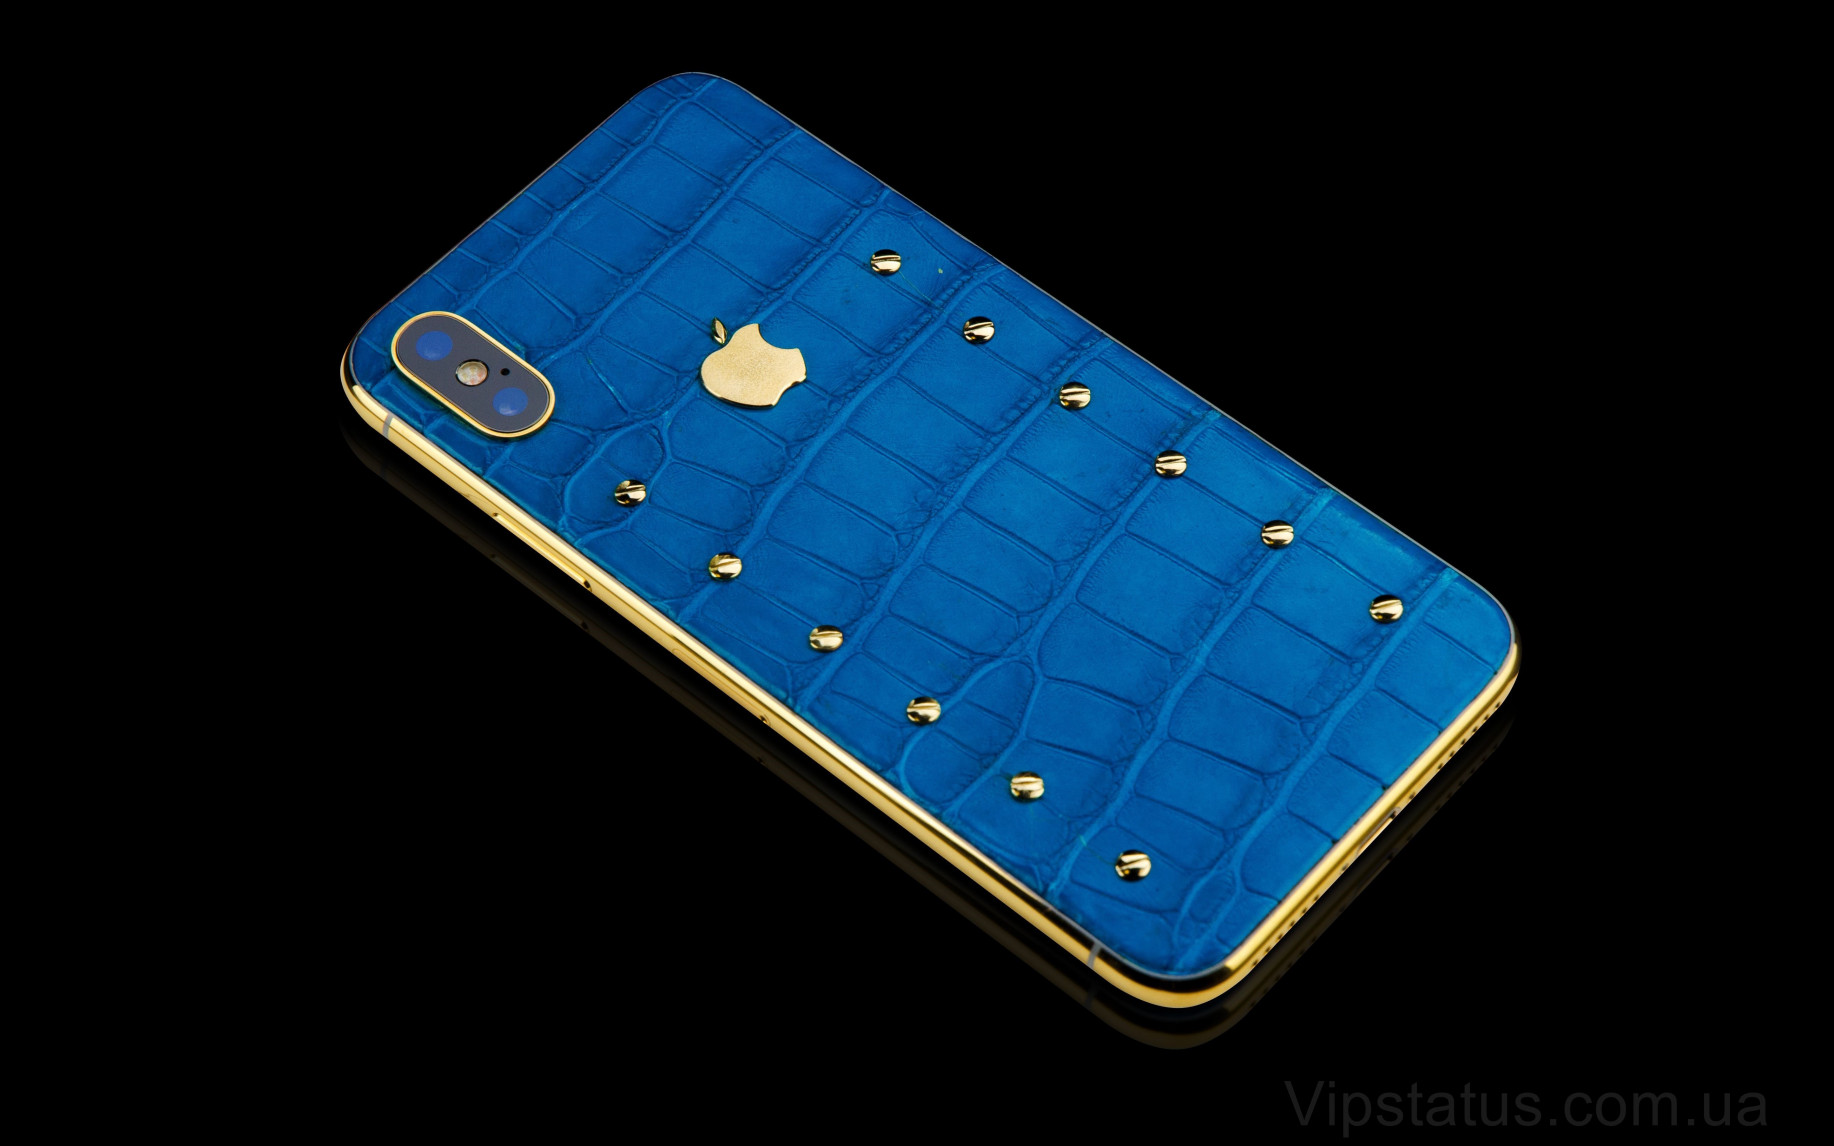 Elite Blue Lord IPHONE 12 PRO MAX 512 GB Blue Lord IPHONE 12 PRO MAX 512 GB image 4